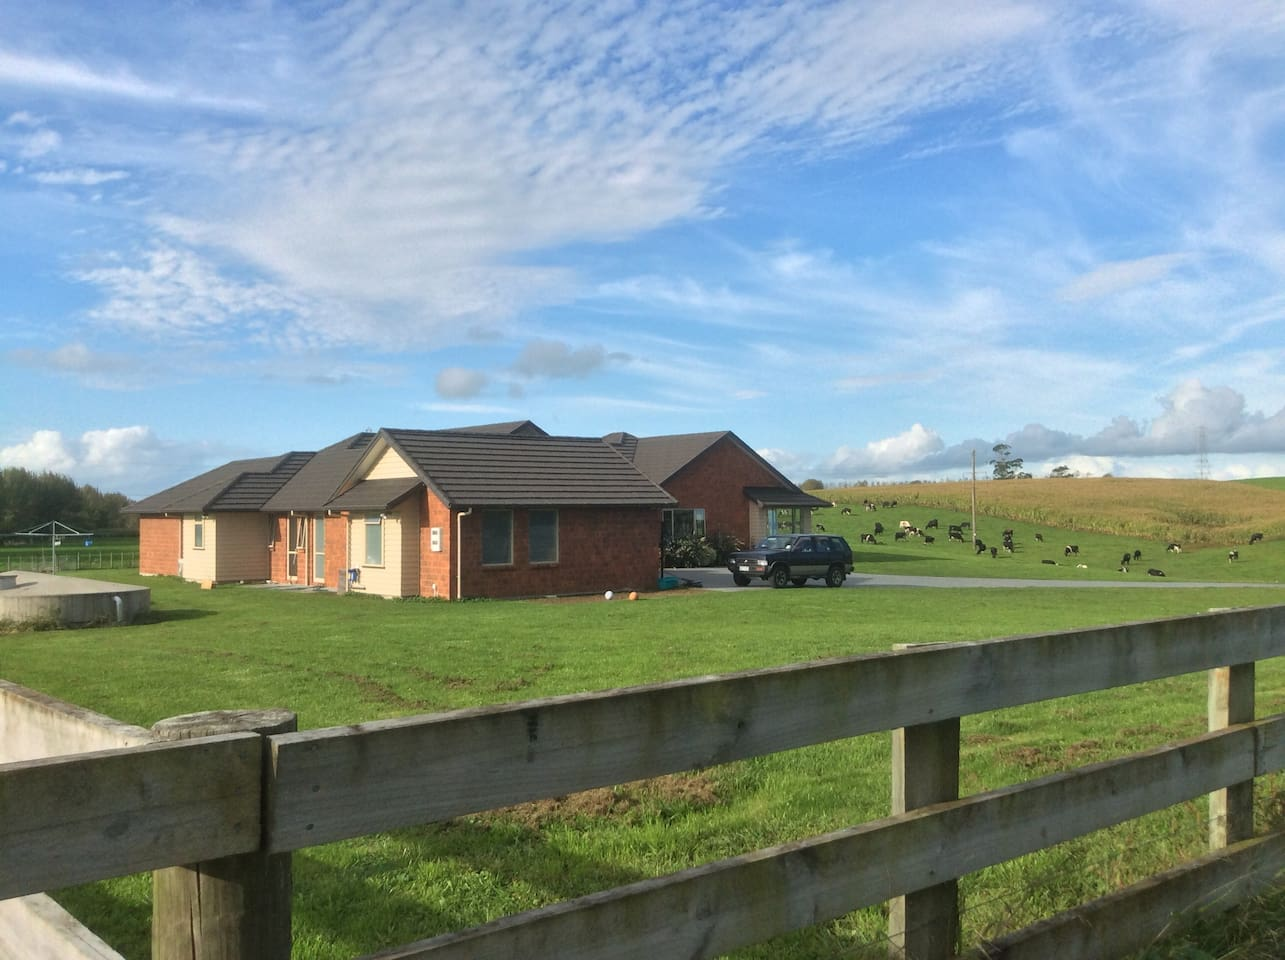 Our spacious sunny home on the city boundary but nestled in the countryside.